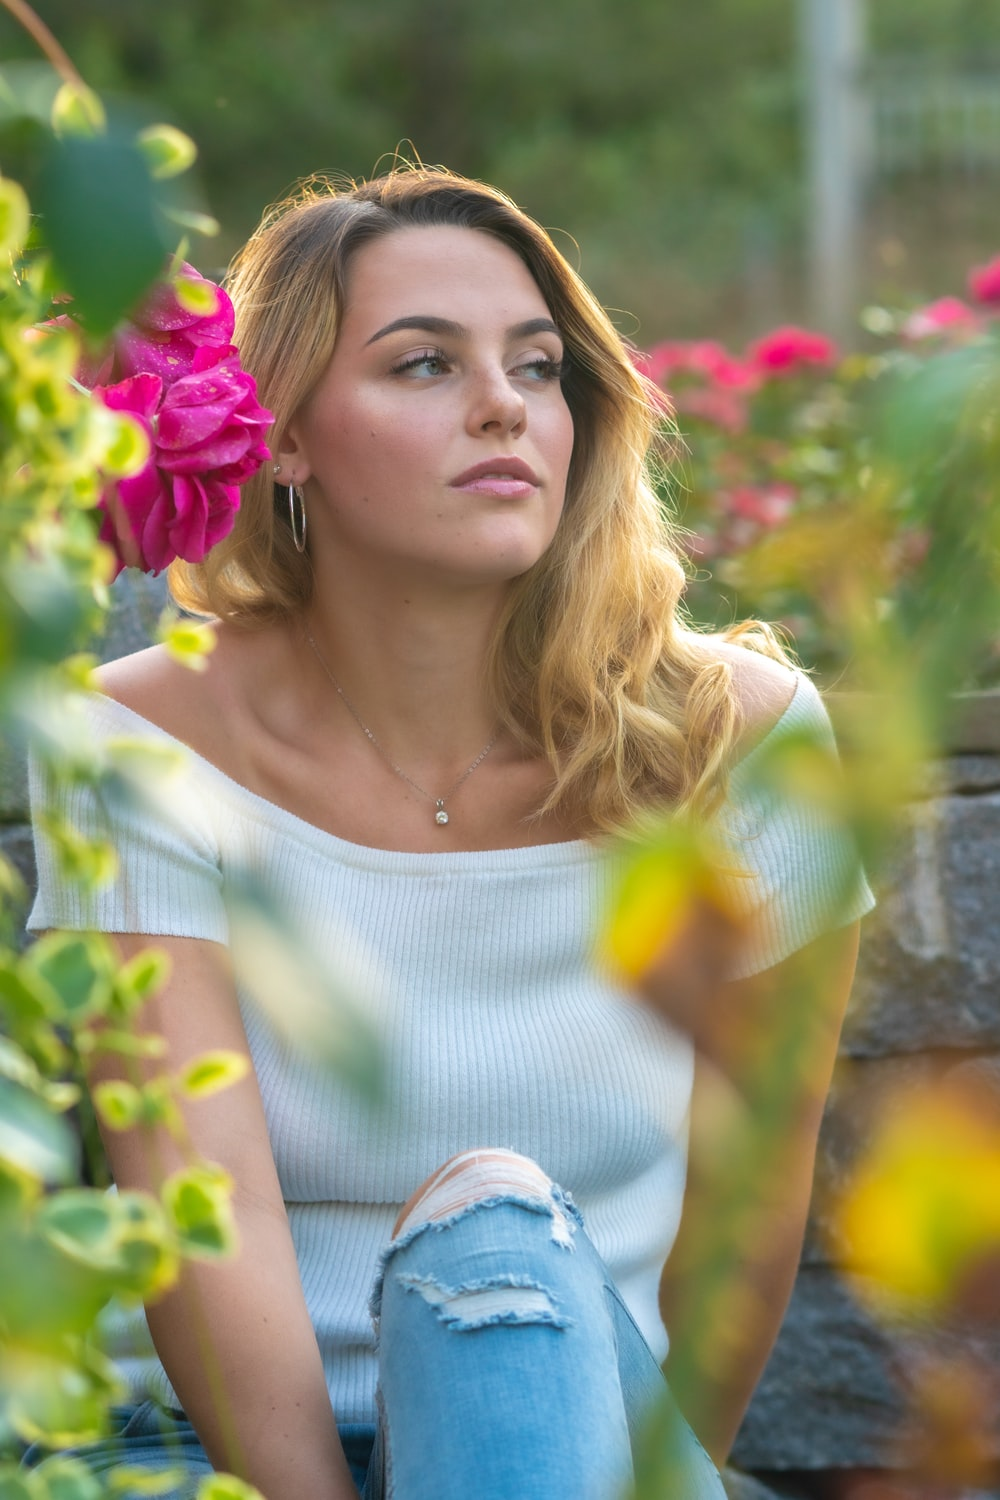 woman in white top sitting near pink flowers